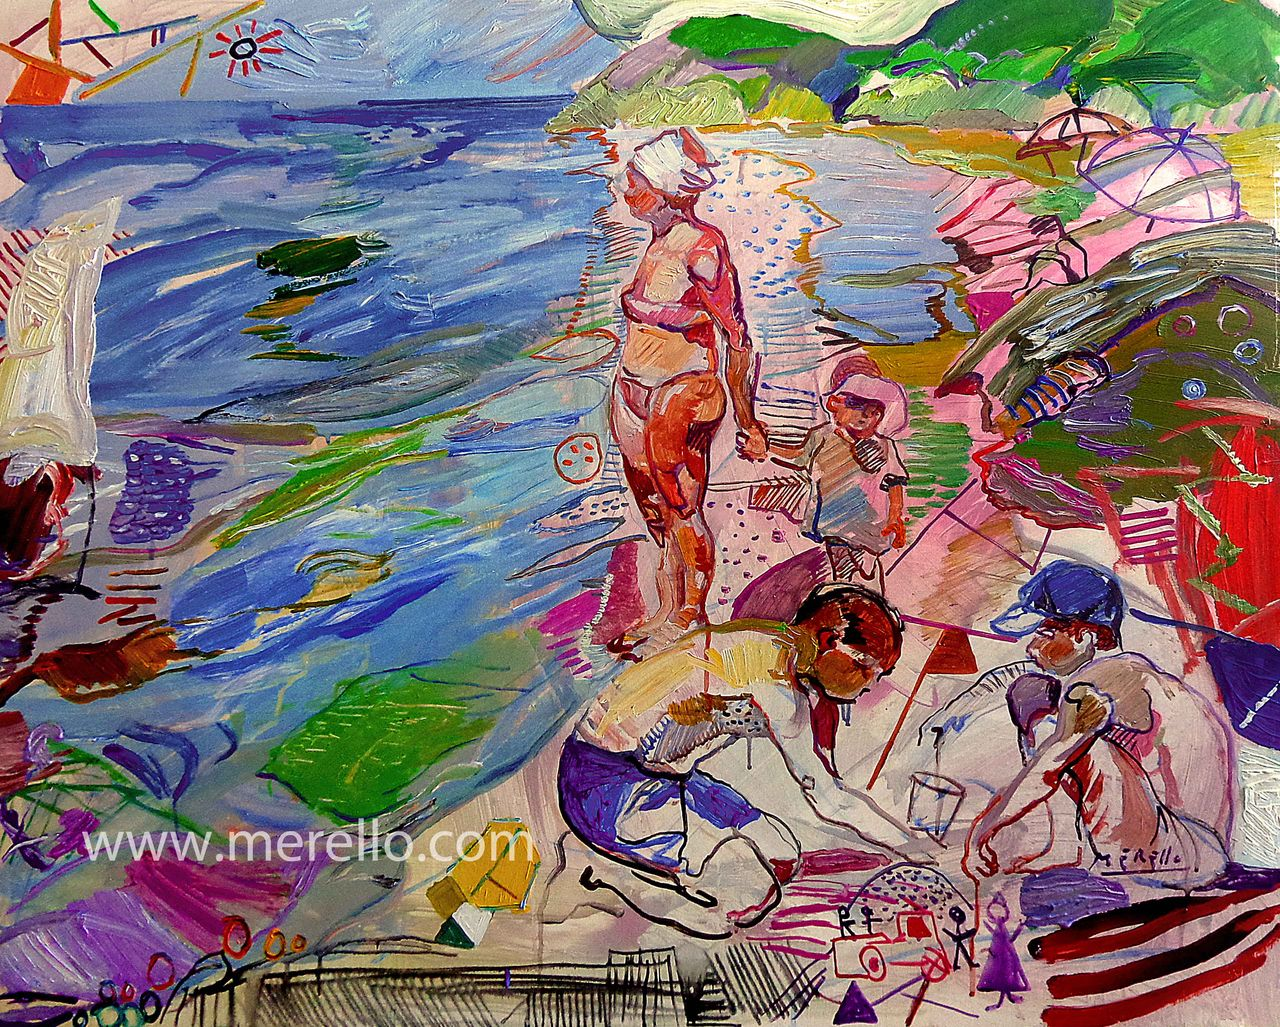 "ART CONTEMPORAIN SIECLE 21 XXI.-Jose Manuel Merello.-""Mirando el mar""(81 x 100cm) Toile. Peinture espagnole contemporaine."